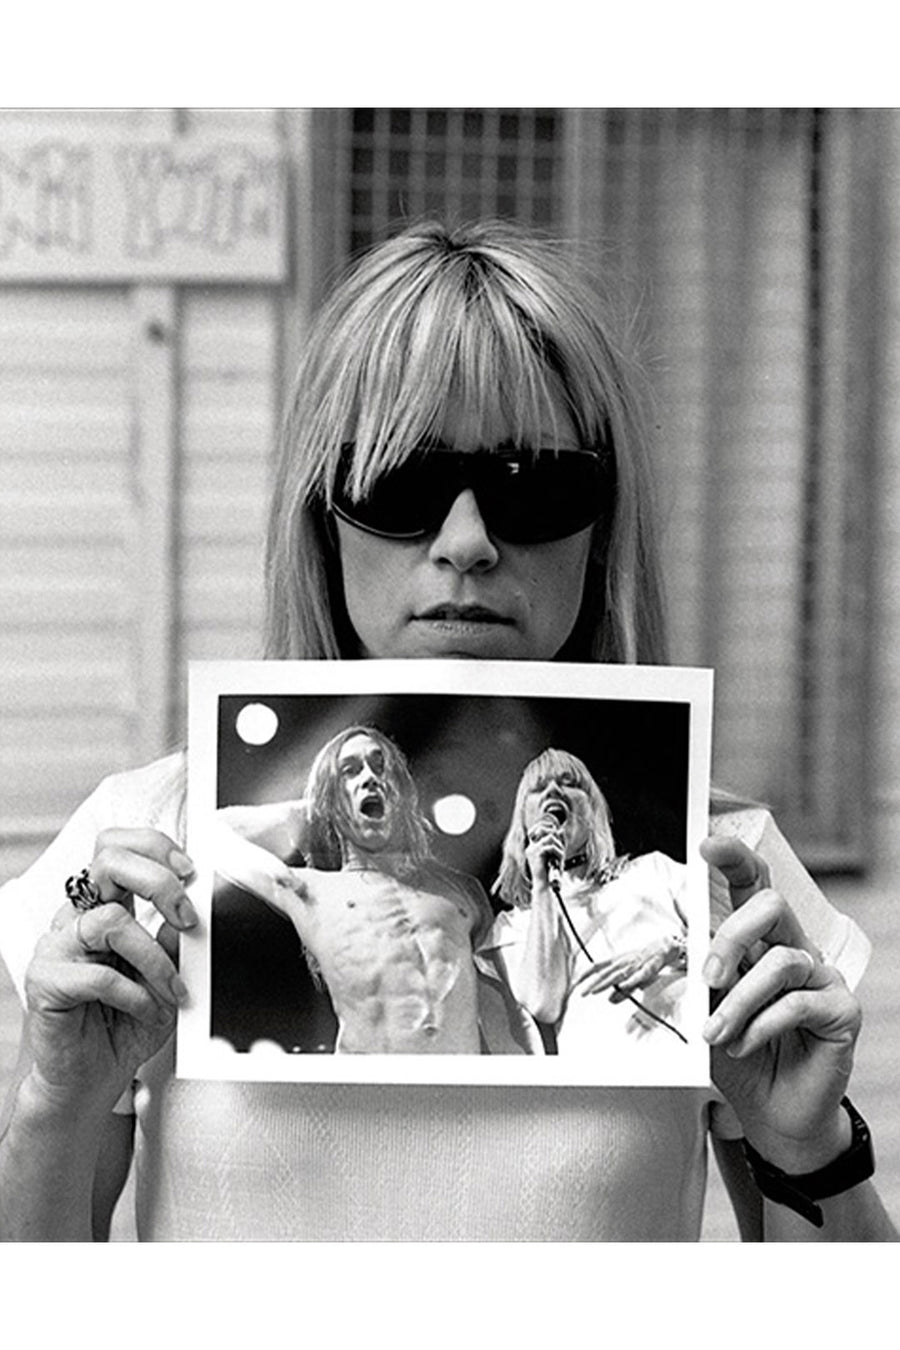 KIM GORDON NO ICON